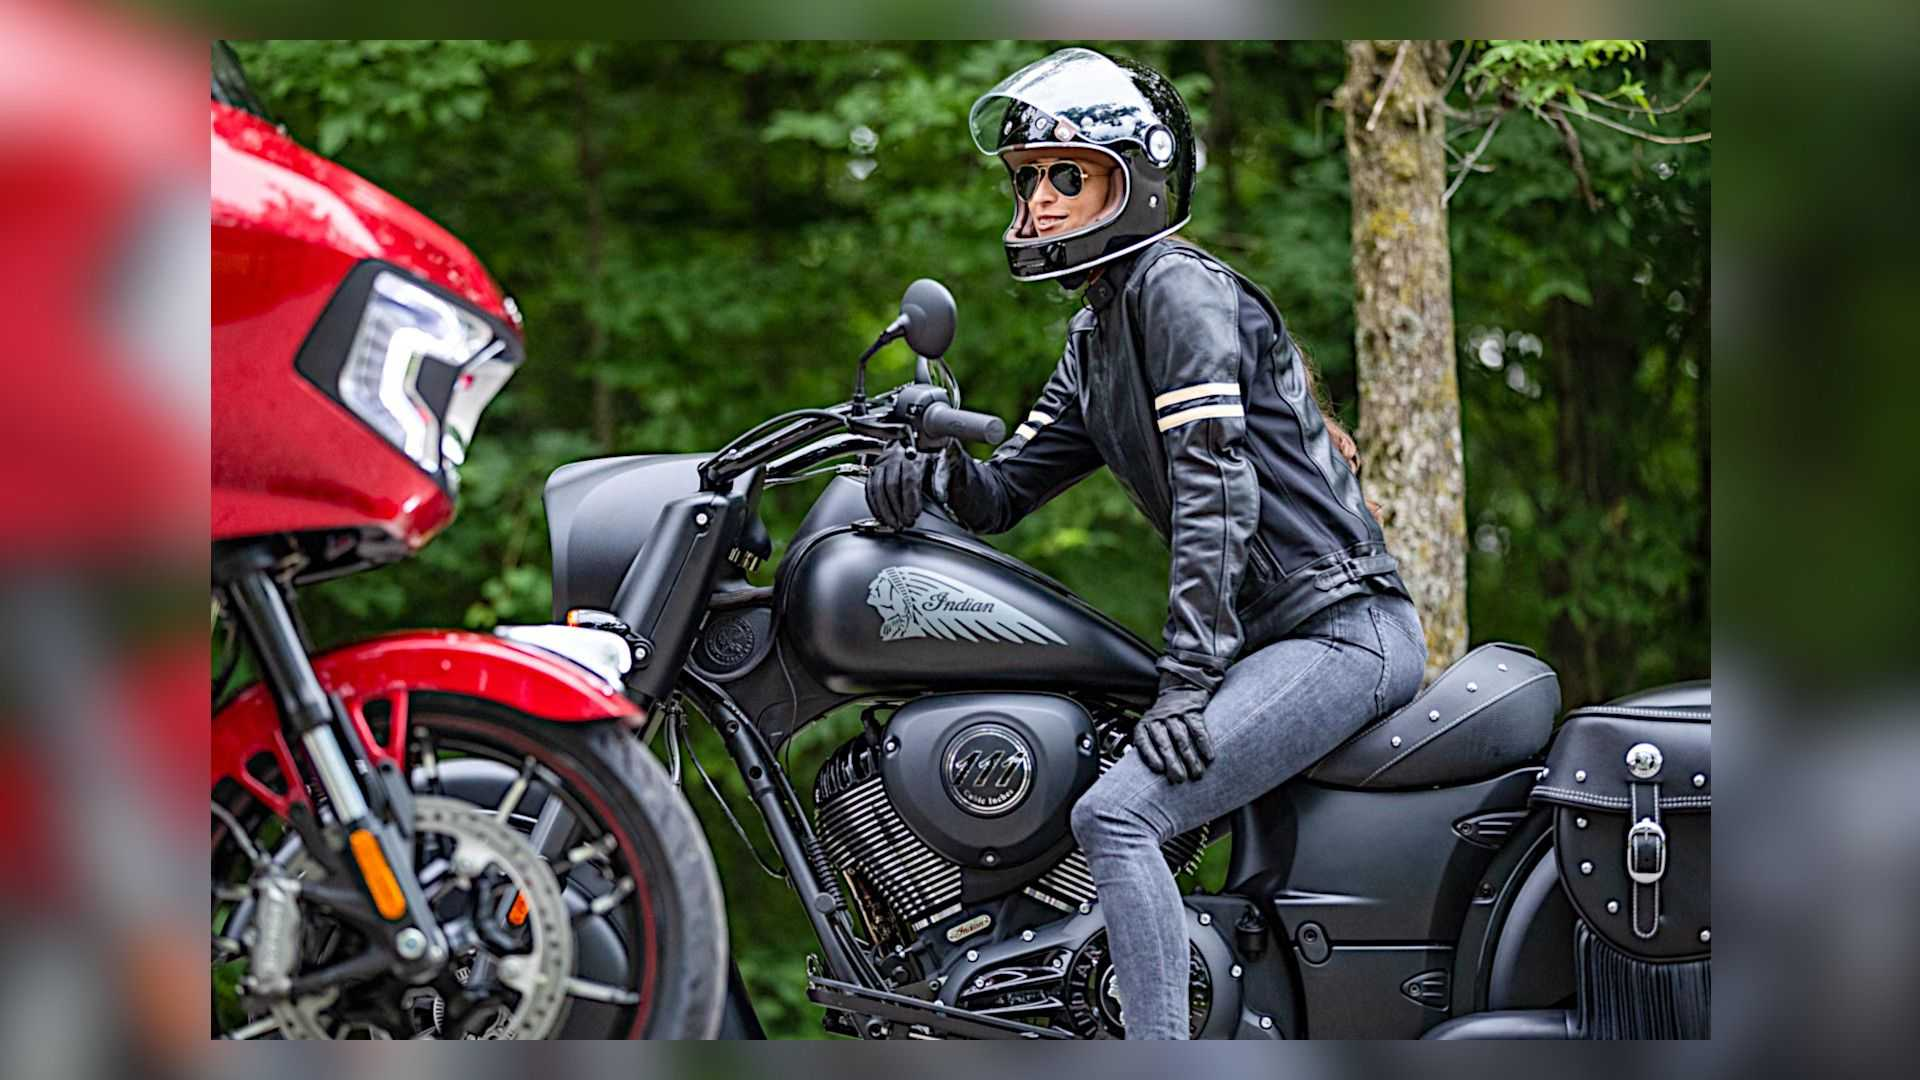 2021 Indian Motorcycle Lineup Is Here With Two New Bikes To Consider